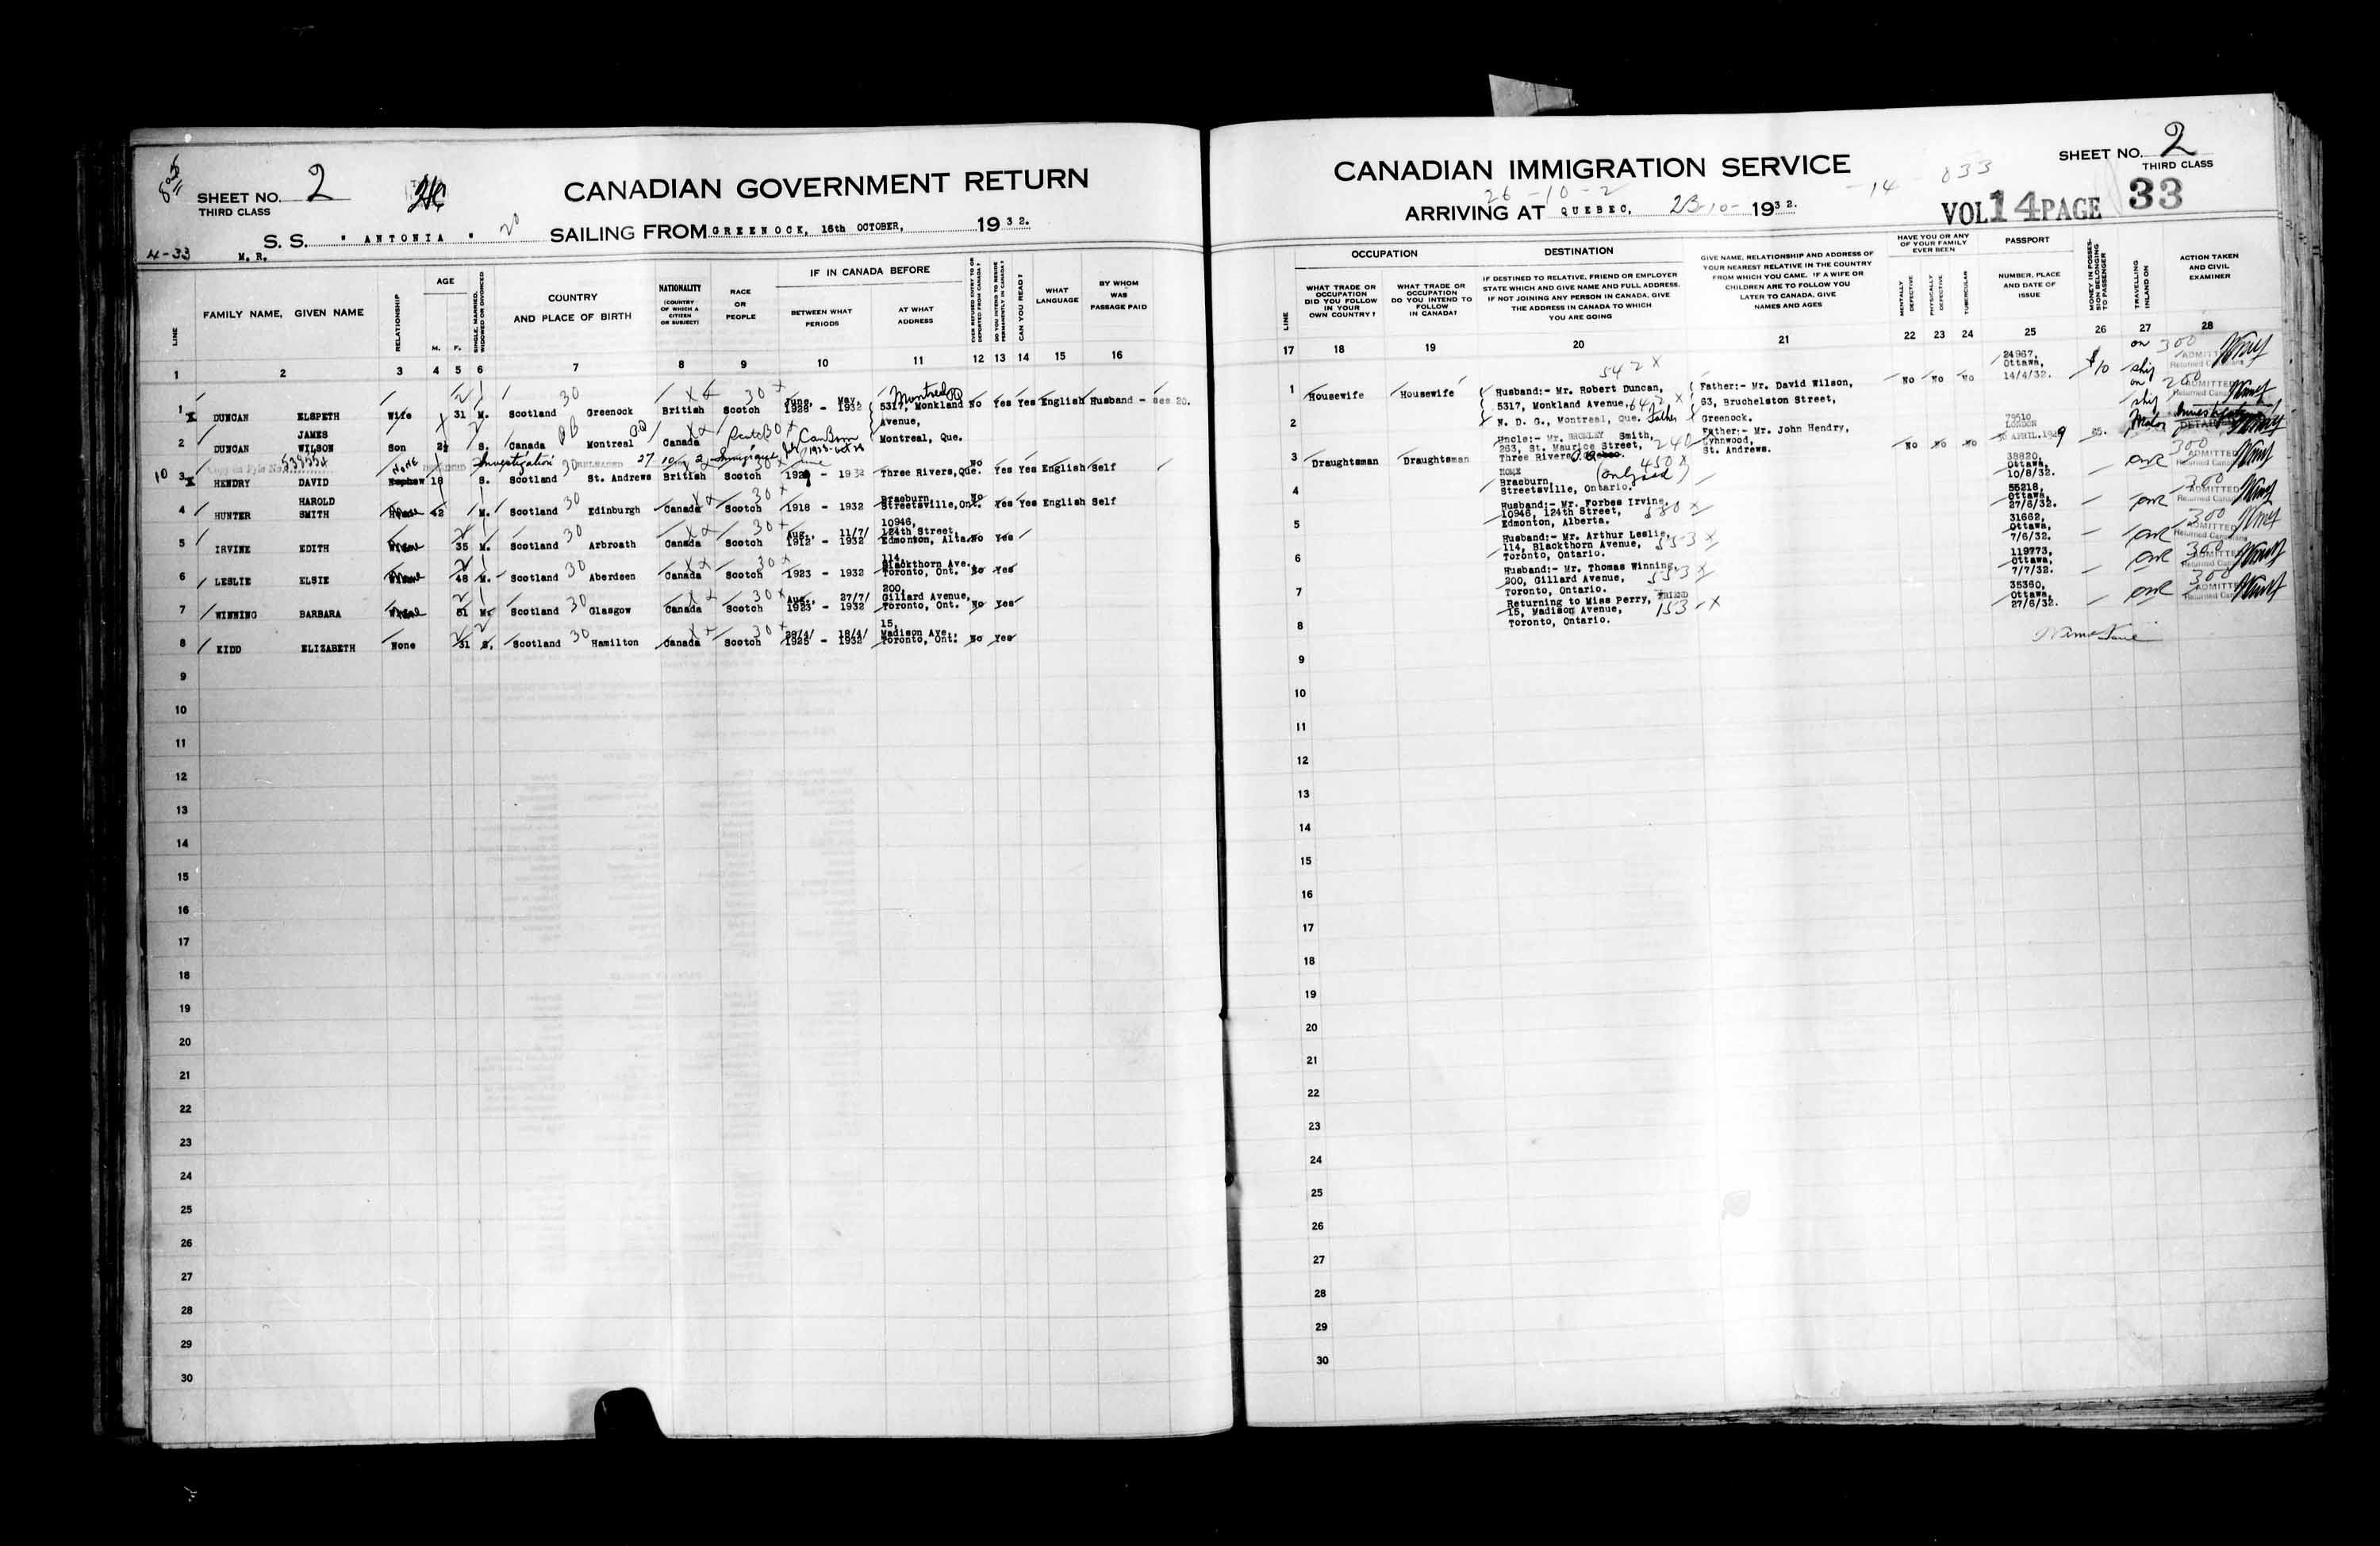 Title: Passenger Lists: Quebec City (1925-1935) - Mikan Number: 134839 - Microform: t-14782